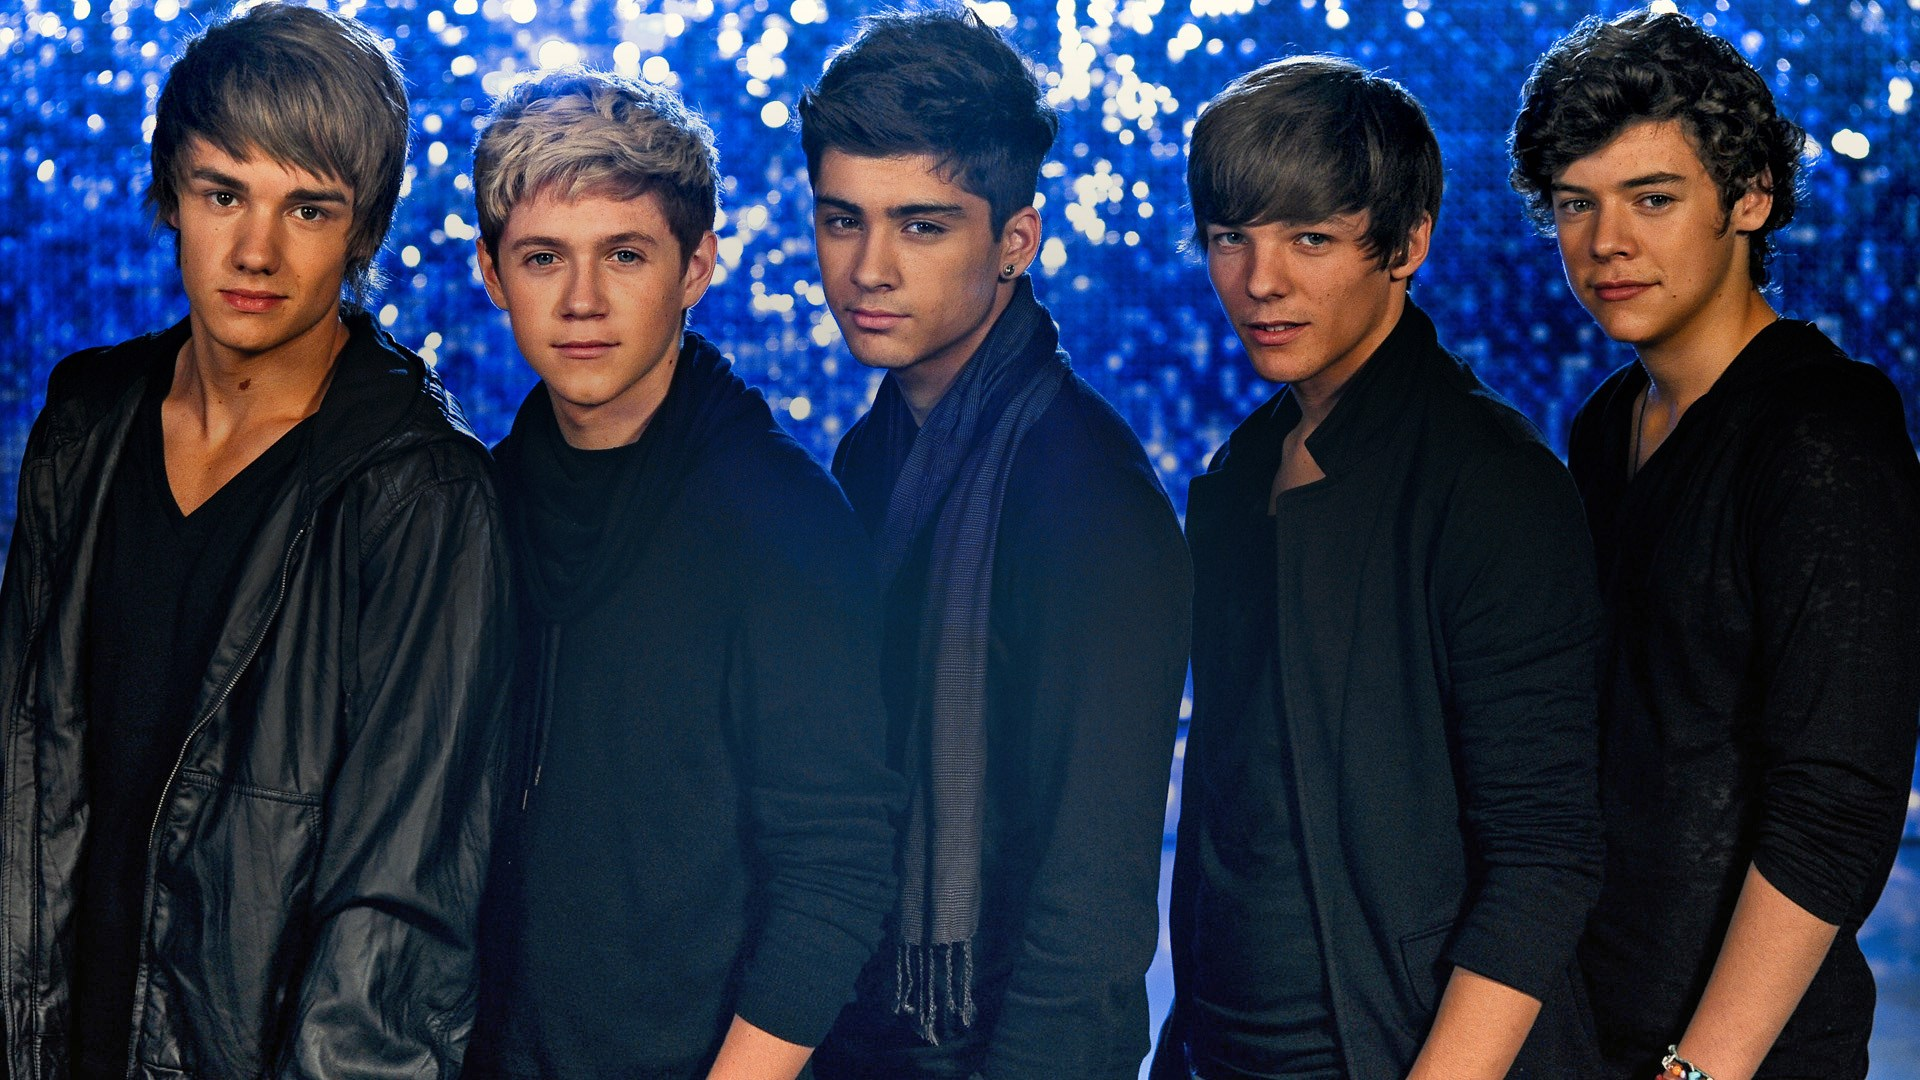 1920-x-1080-px-one-direction-backround-Full-HD-Pictures-by-Seton-Walls-wallpaper-wp360734